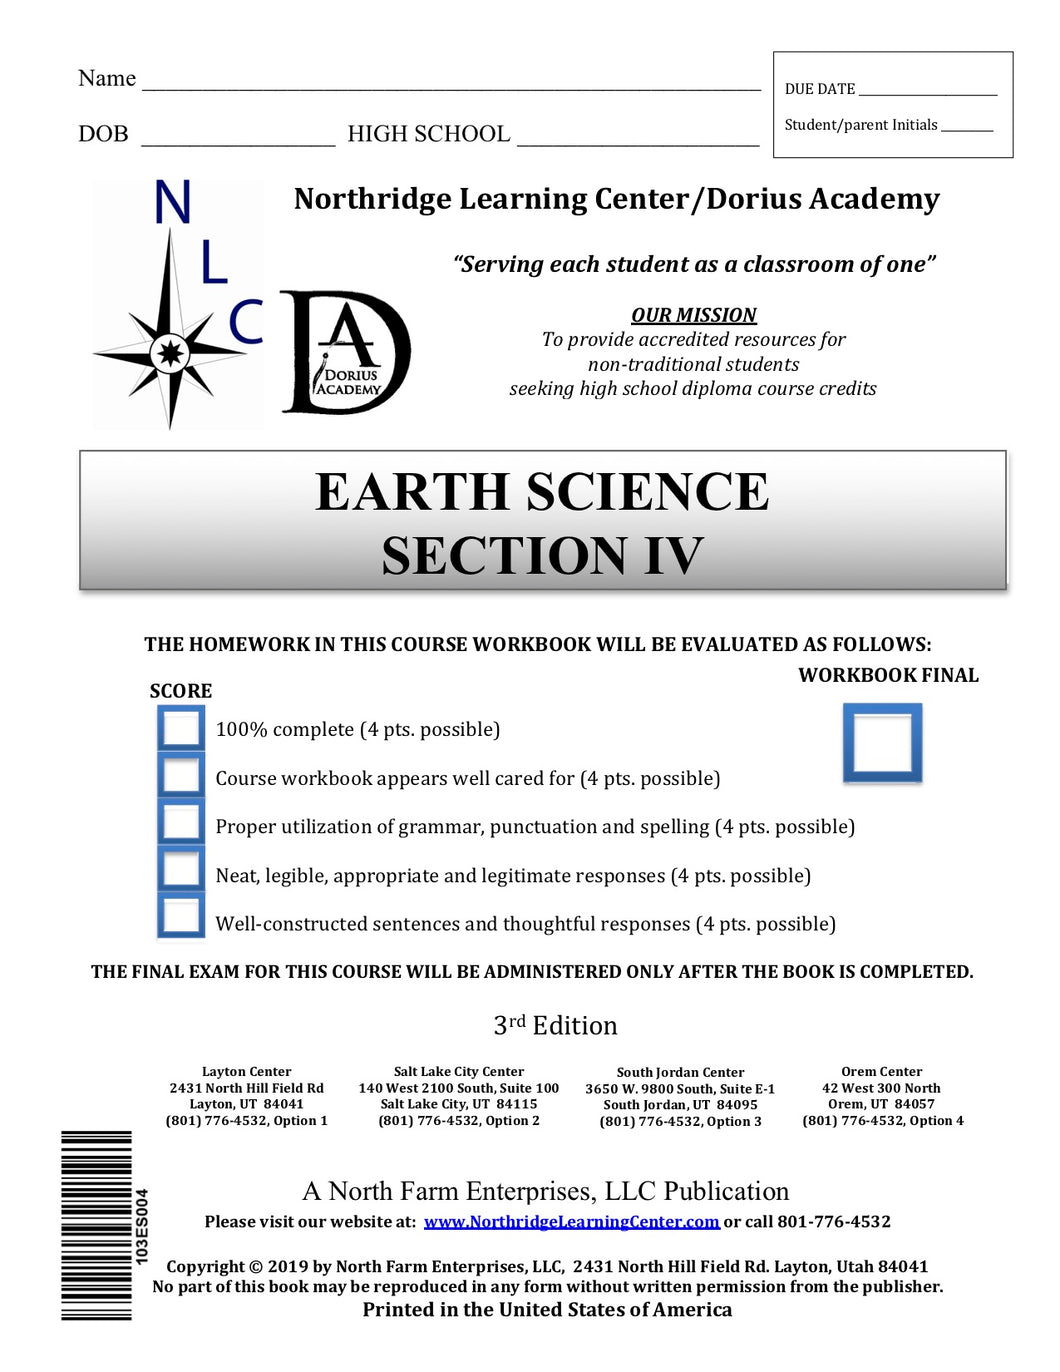 Earth Science, Section IV